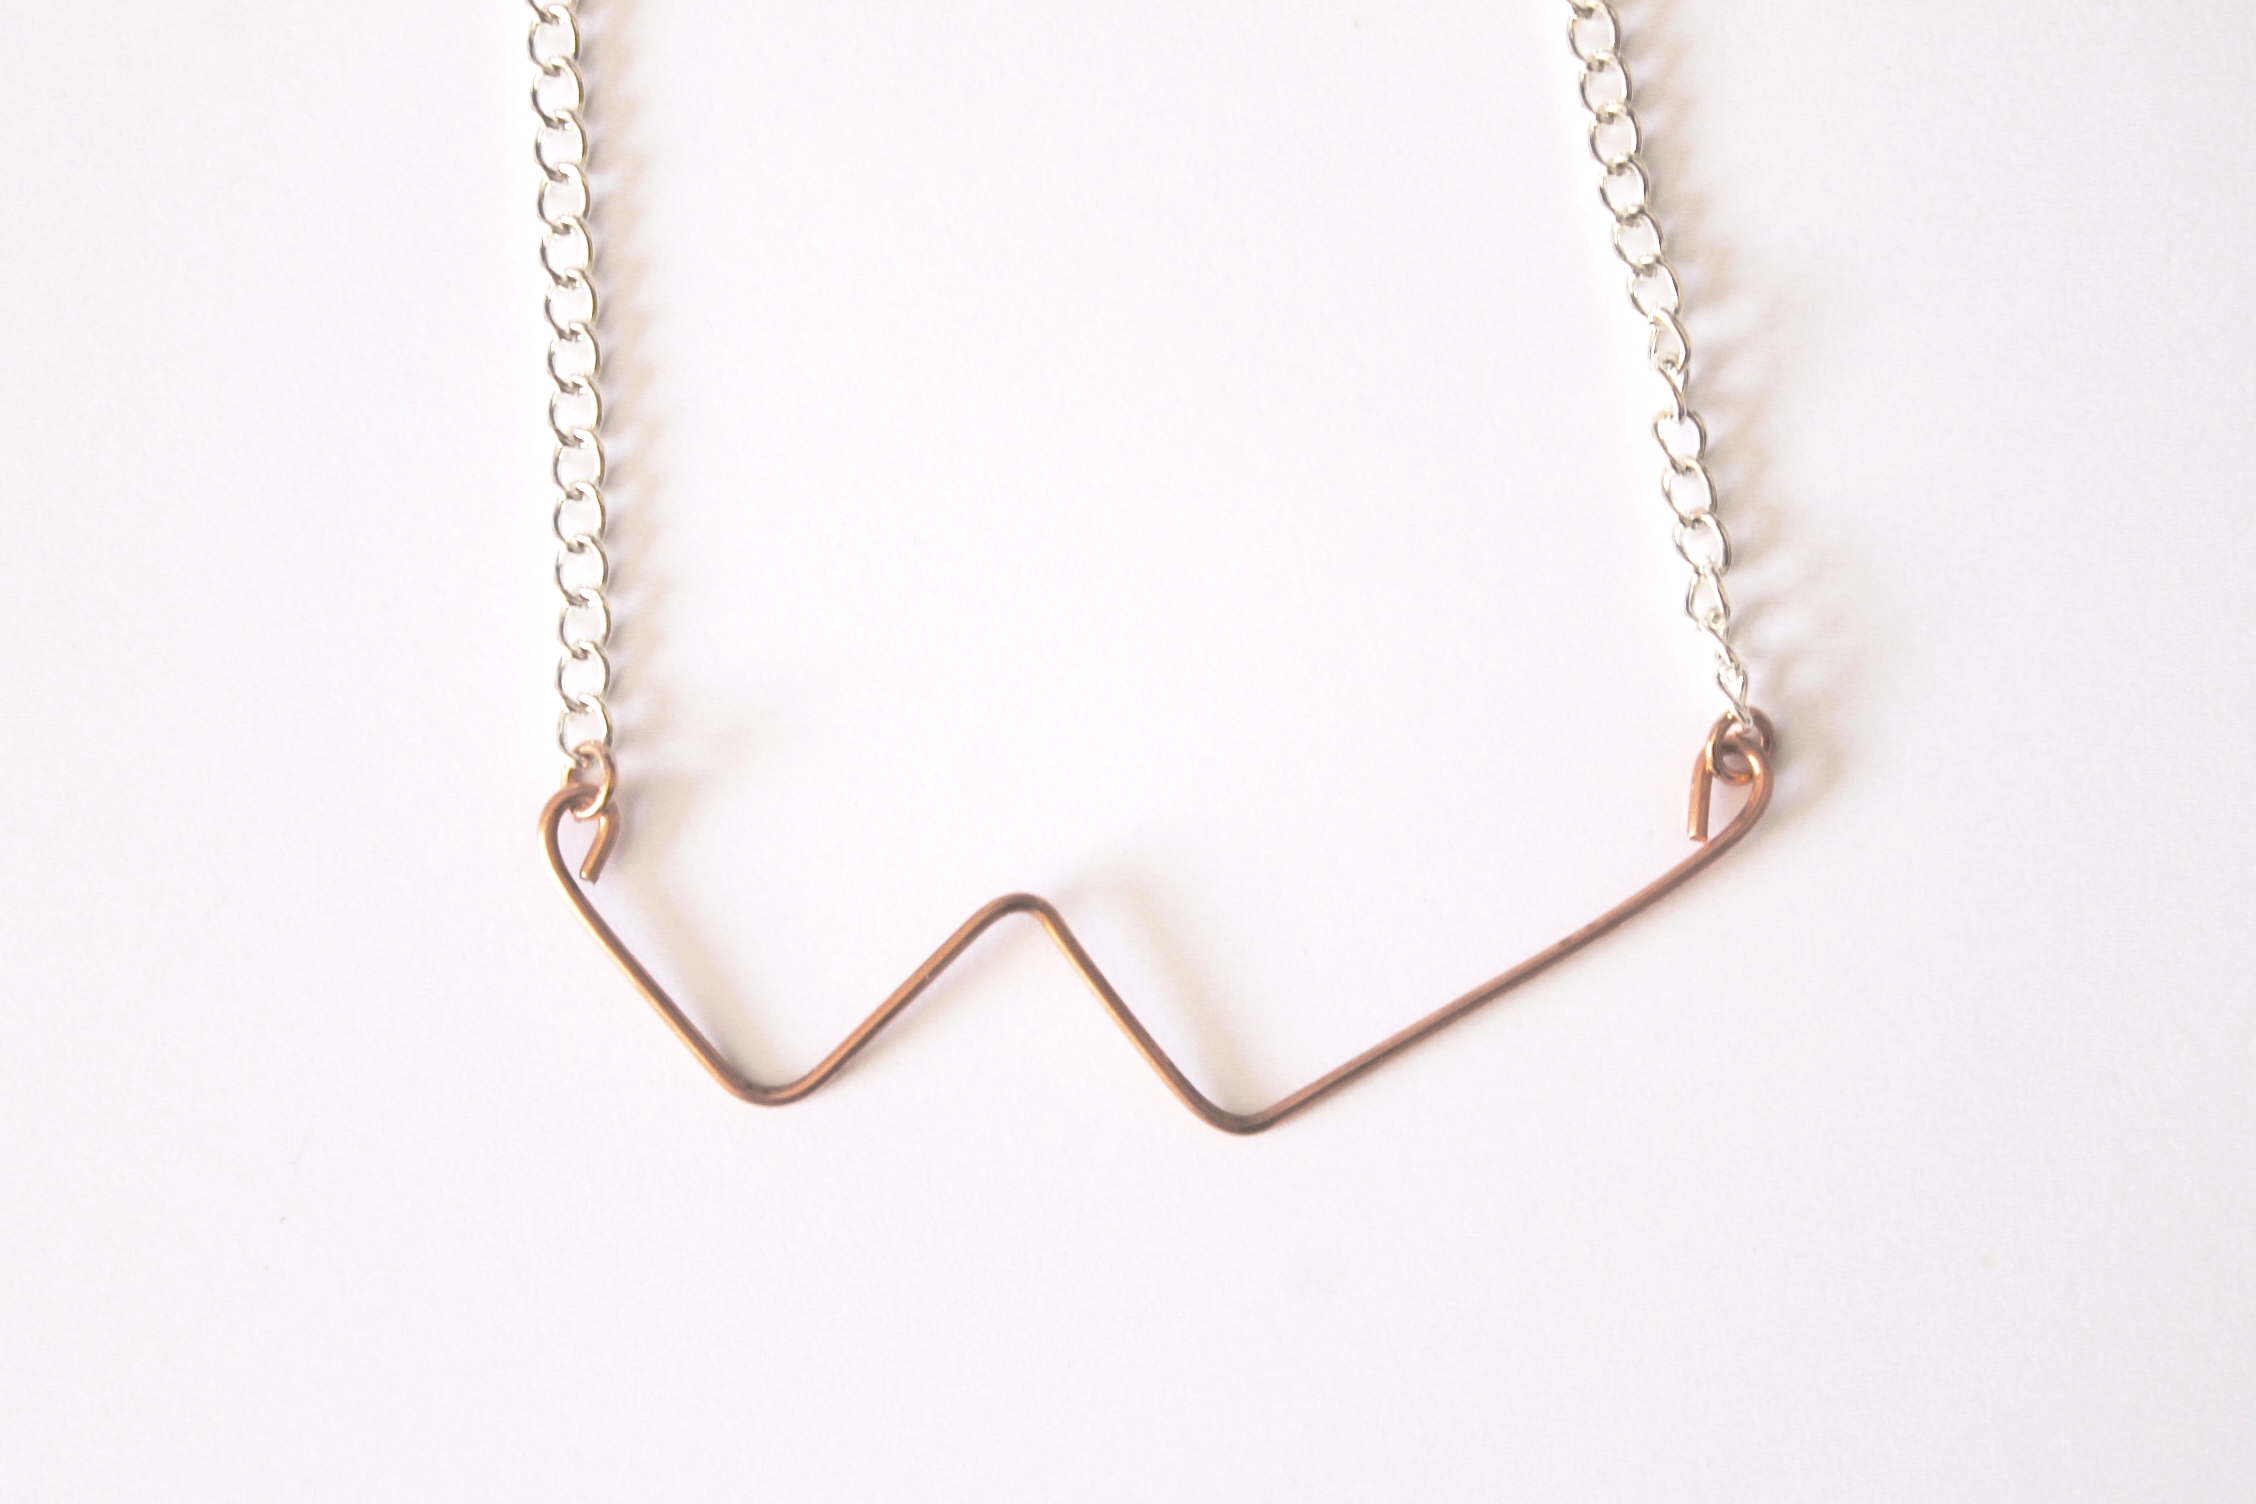 Cassiopeia necklace  Materials:  recycled copper wire & curb chain